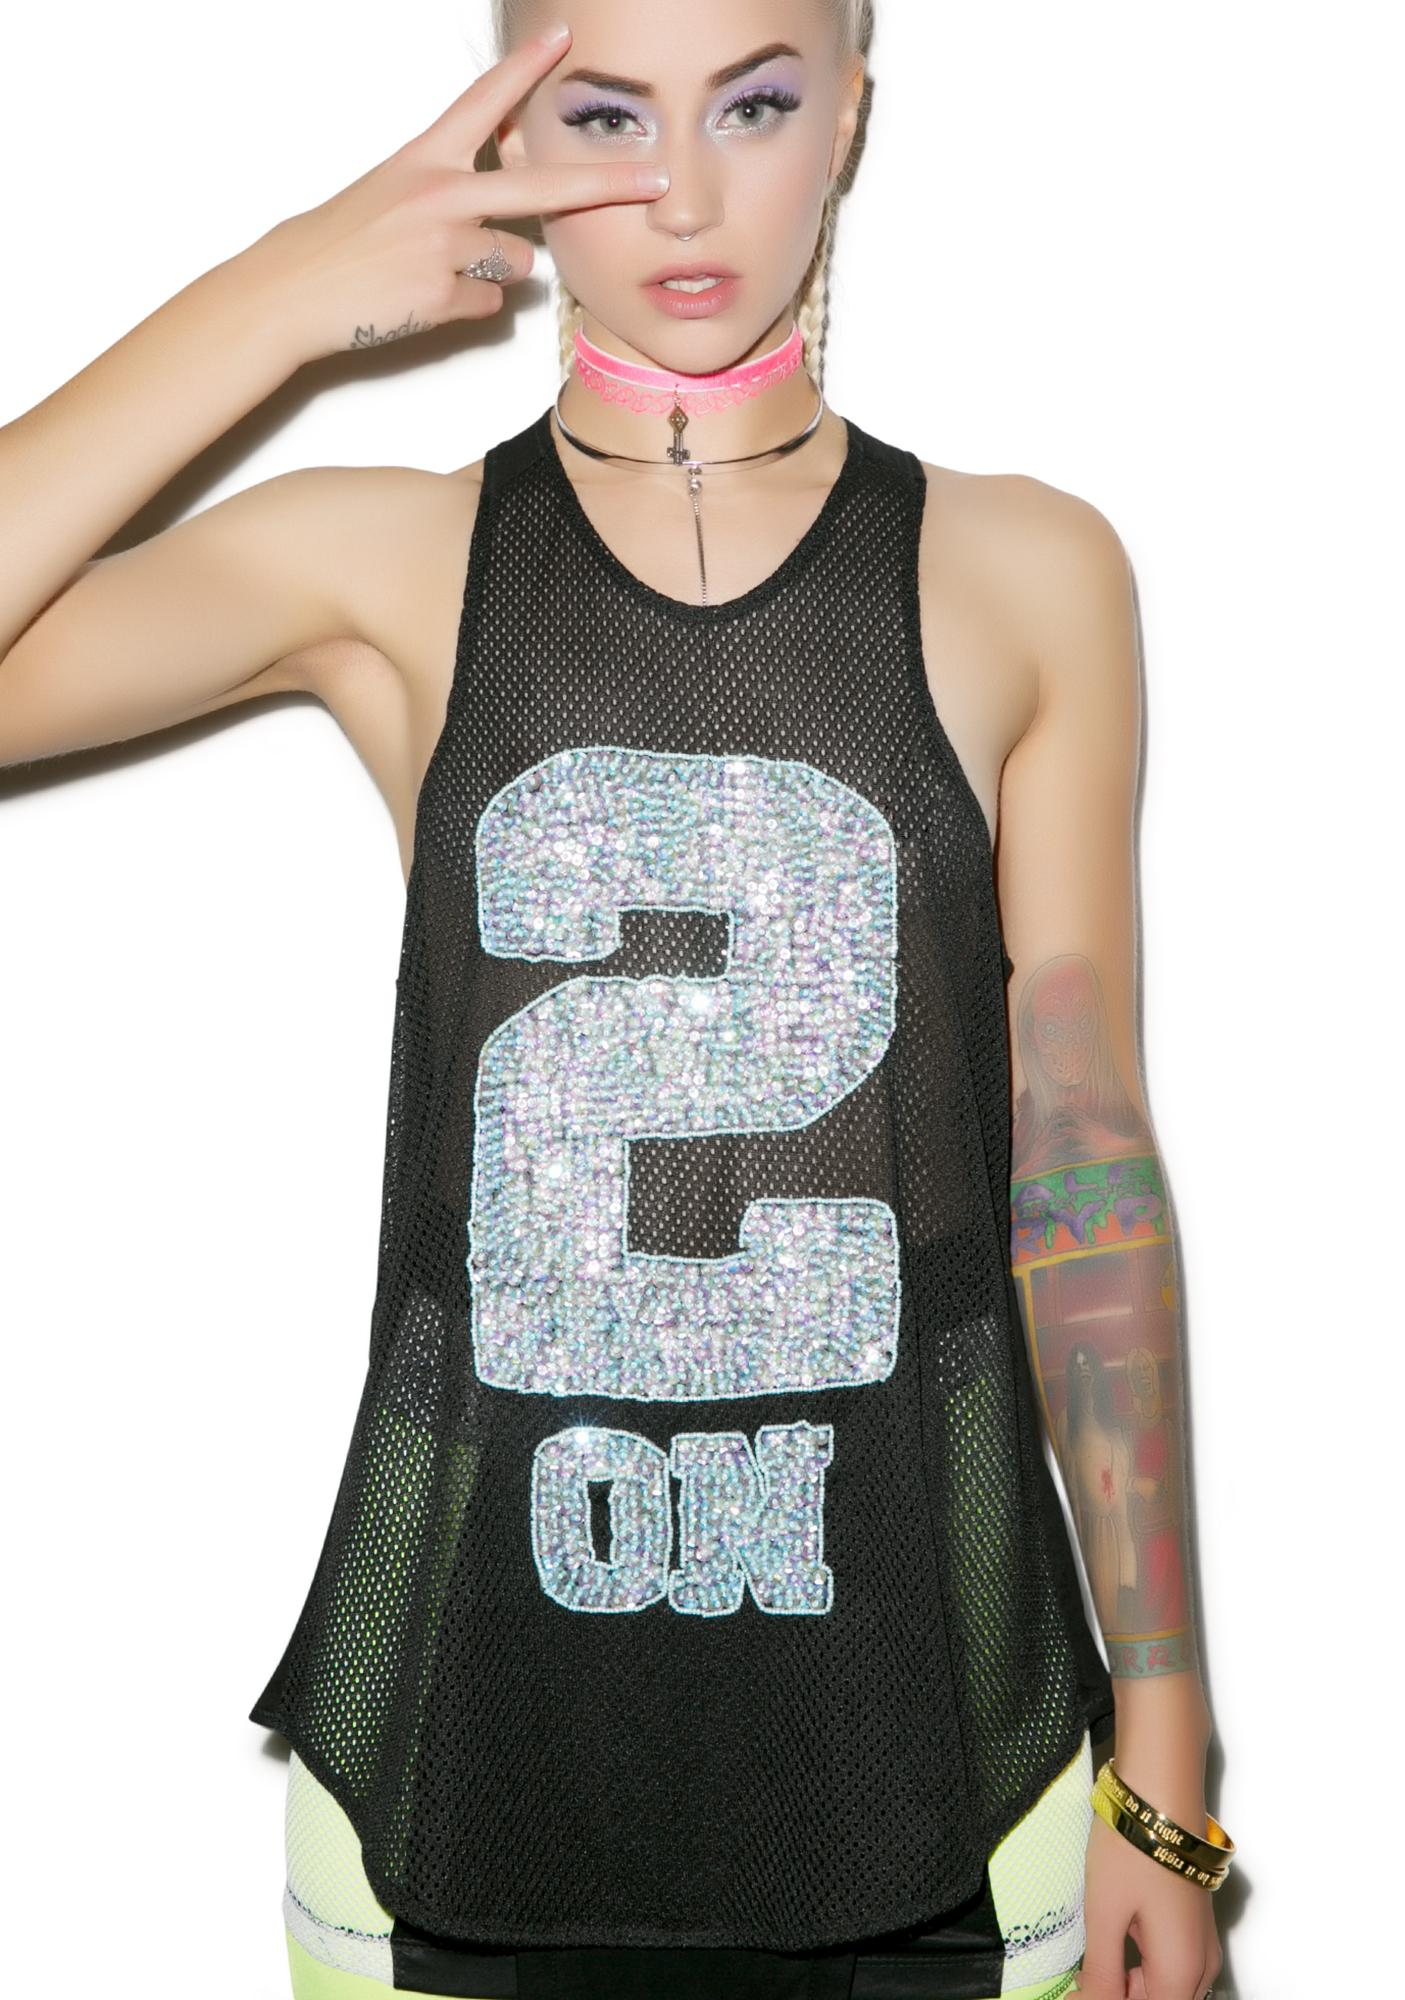 This Is A Love Song 2 On Sequin Singlet